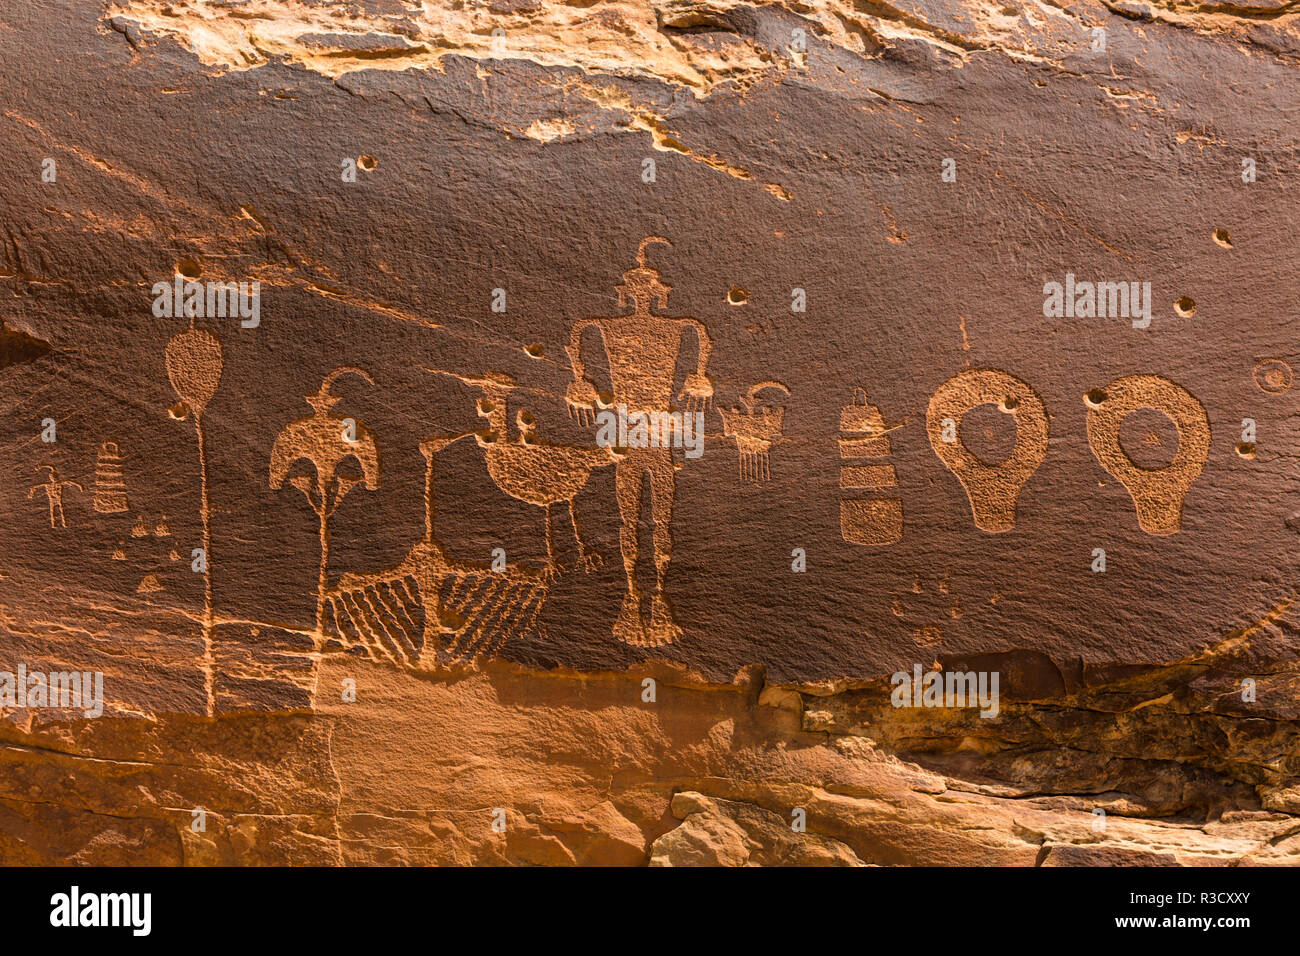 USA, Utah, Bears Ears National Monument. Wolfman Panel of petroglyphs in Butler Wash. - Stock Image